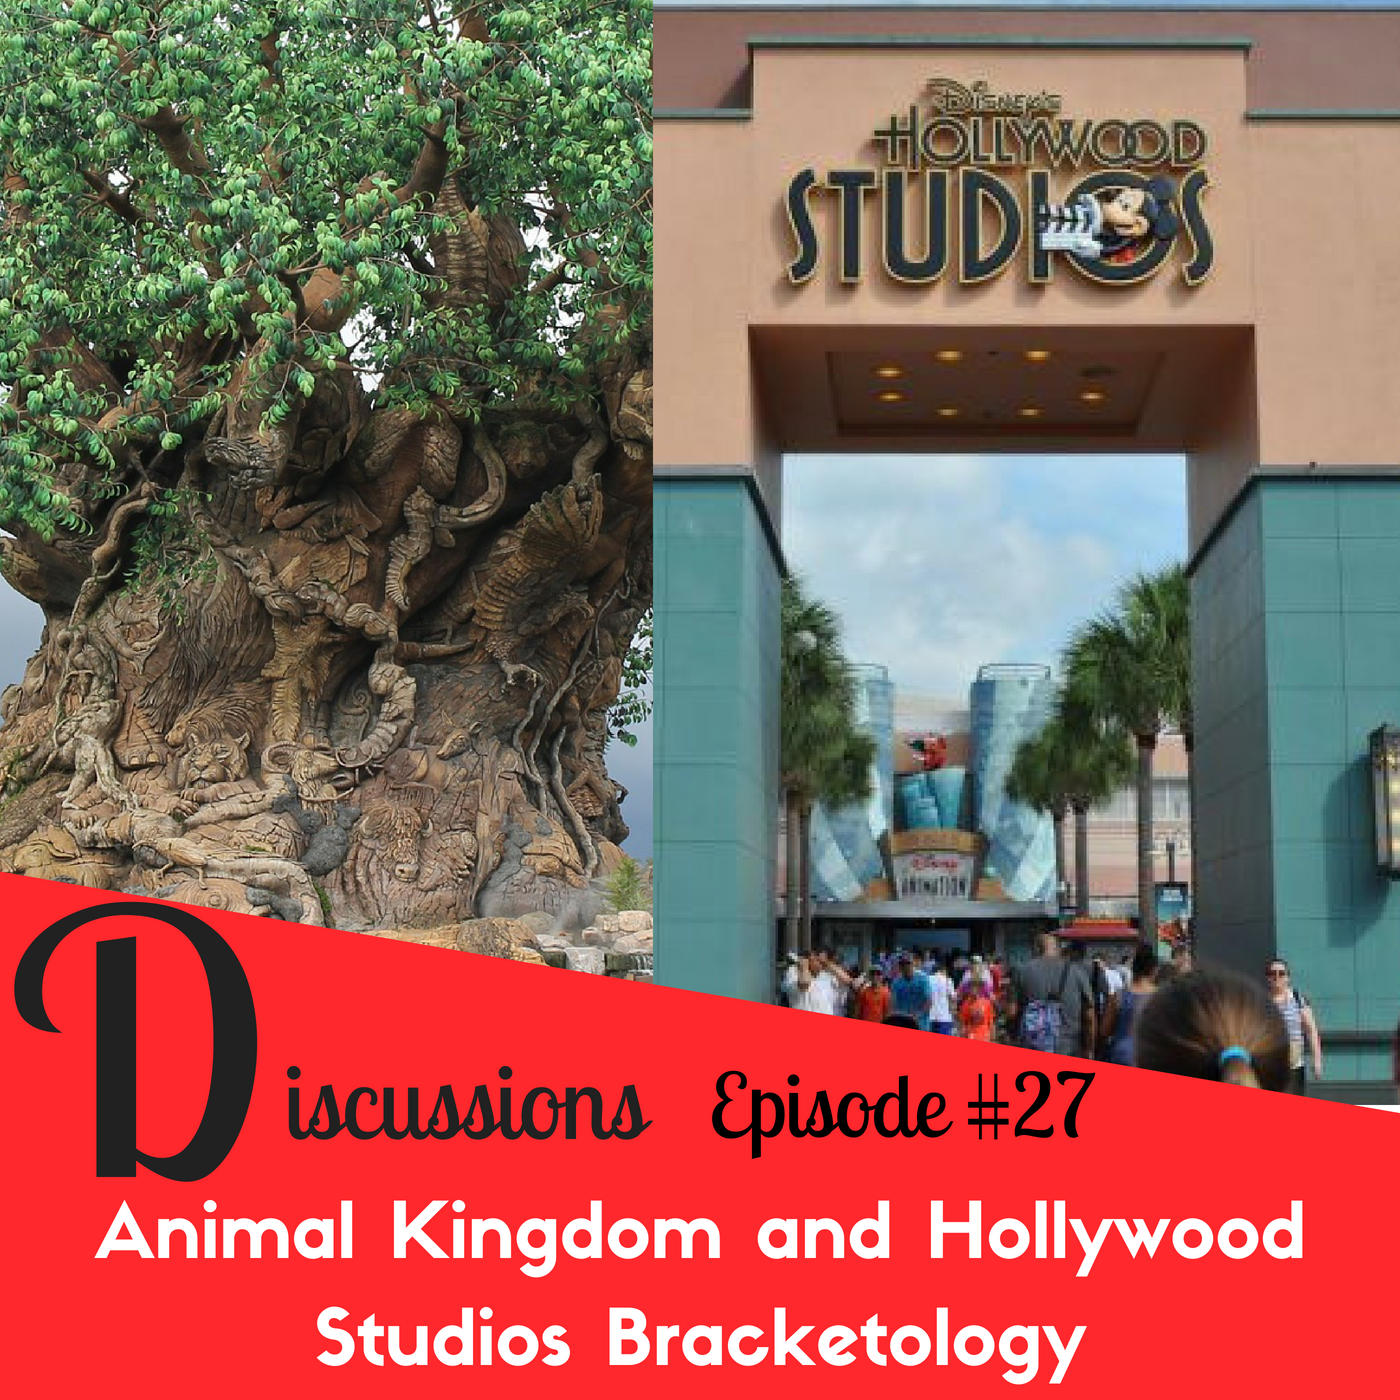 Hollywood Studios and Animal Kingdom Bracketology, Star Wars Resistance, Toy Story land info and more! - Disney Discussions